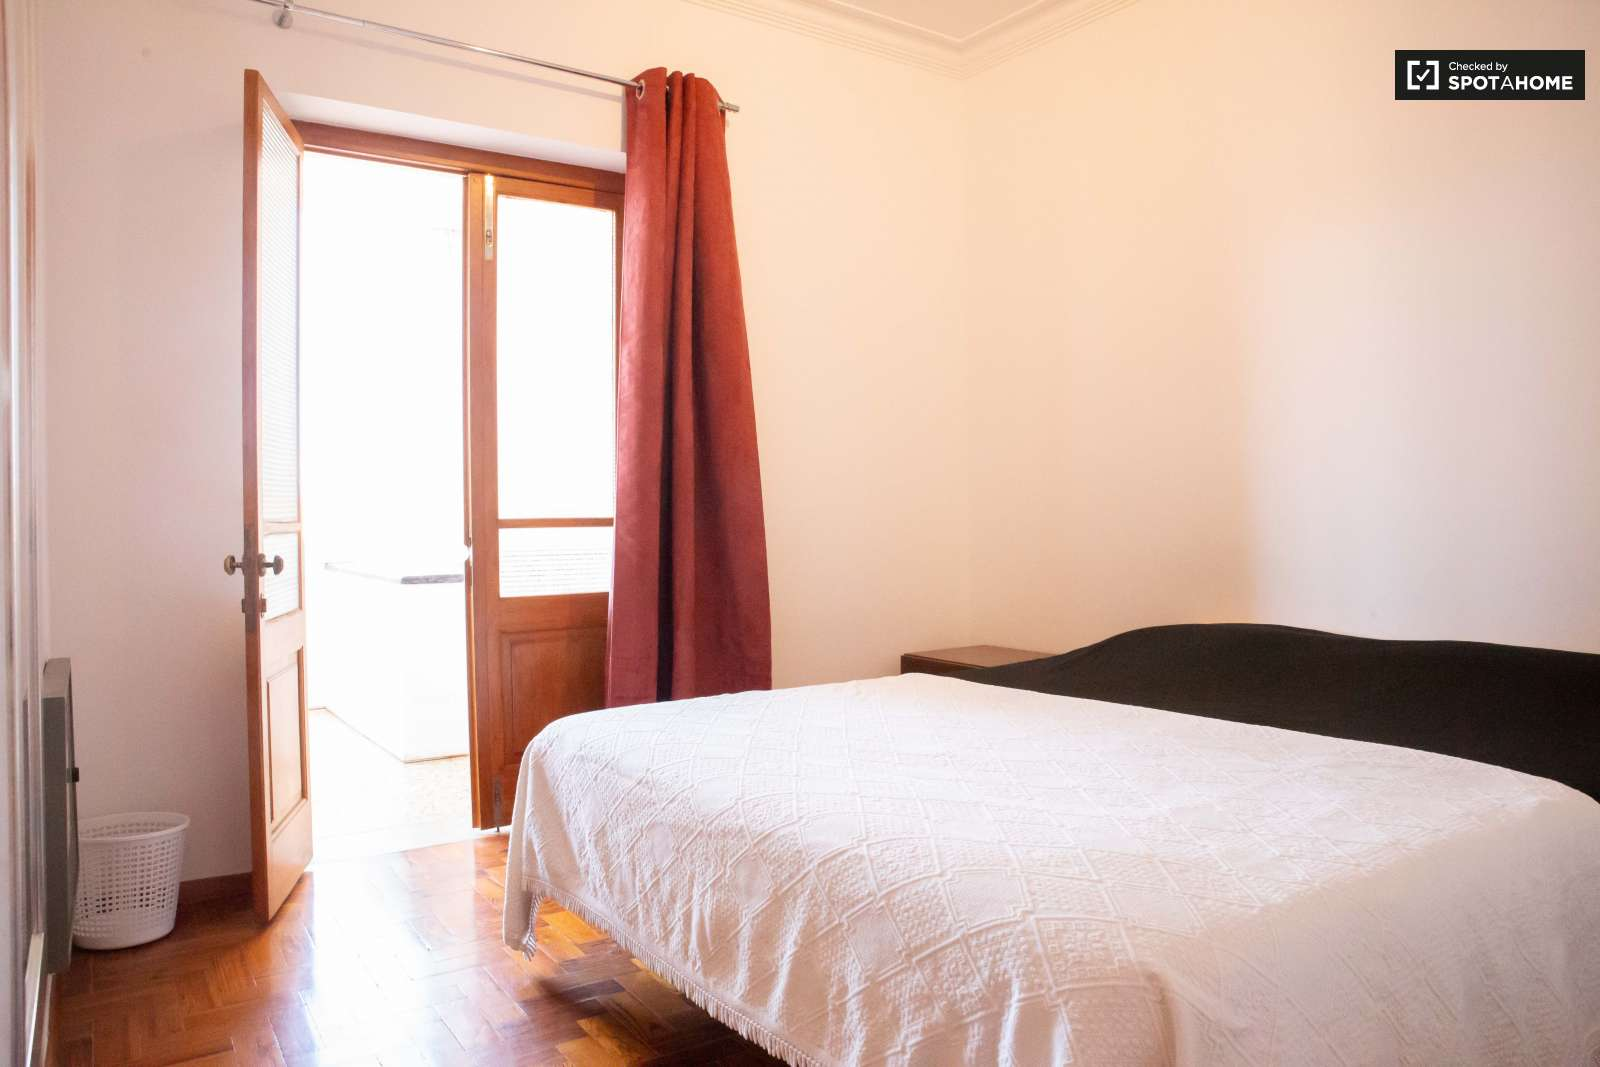 Double bed in Rooms for rent in charming 5-bedroom house in Estoril